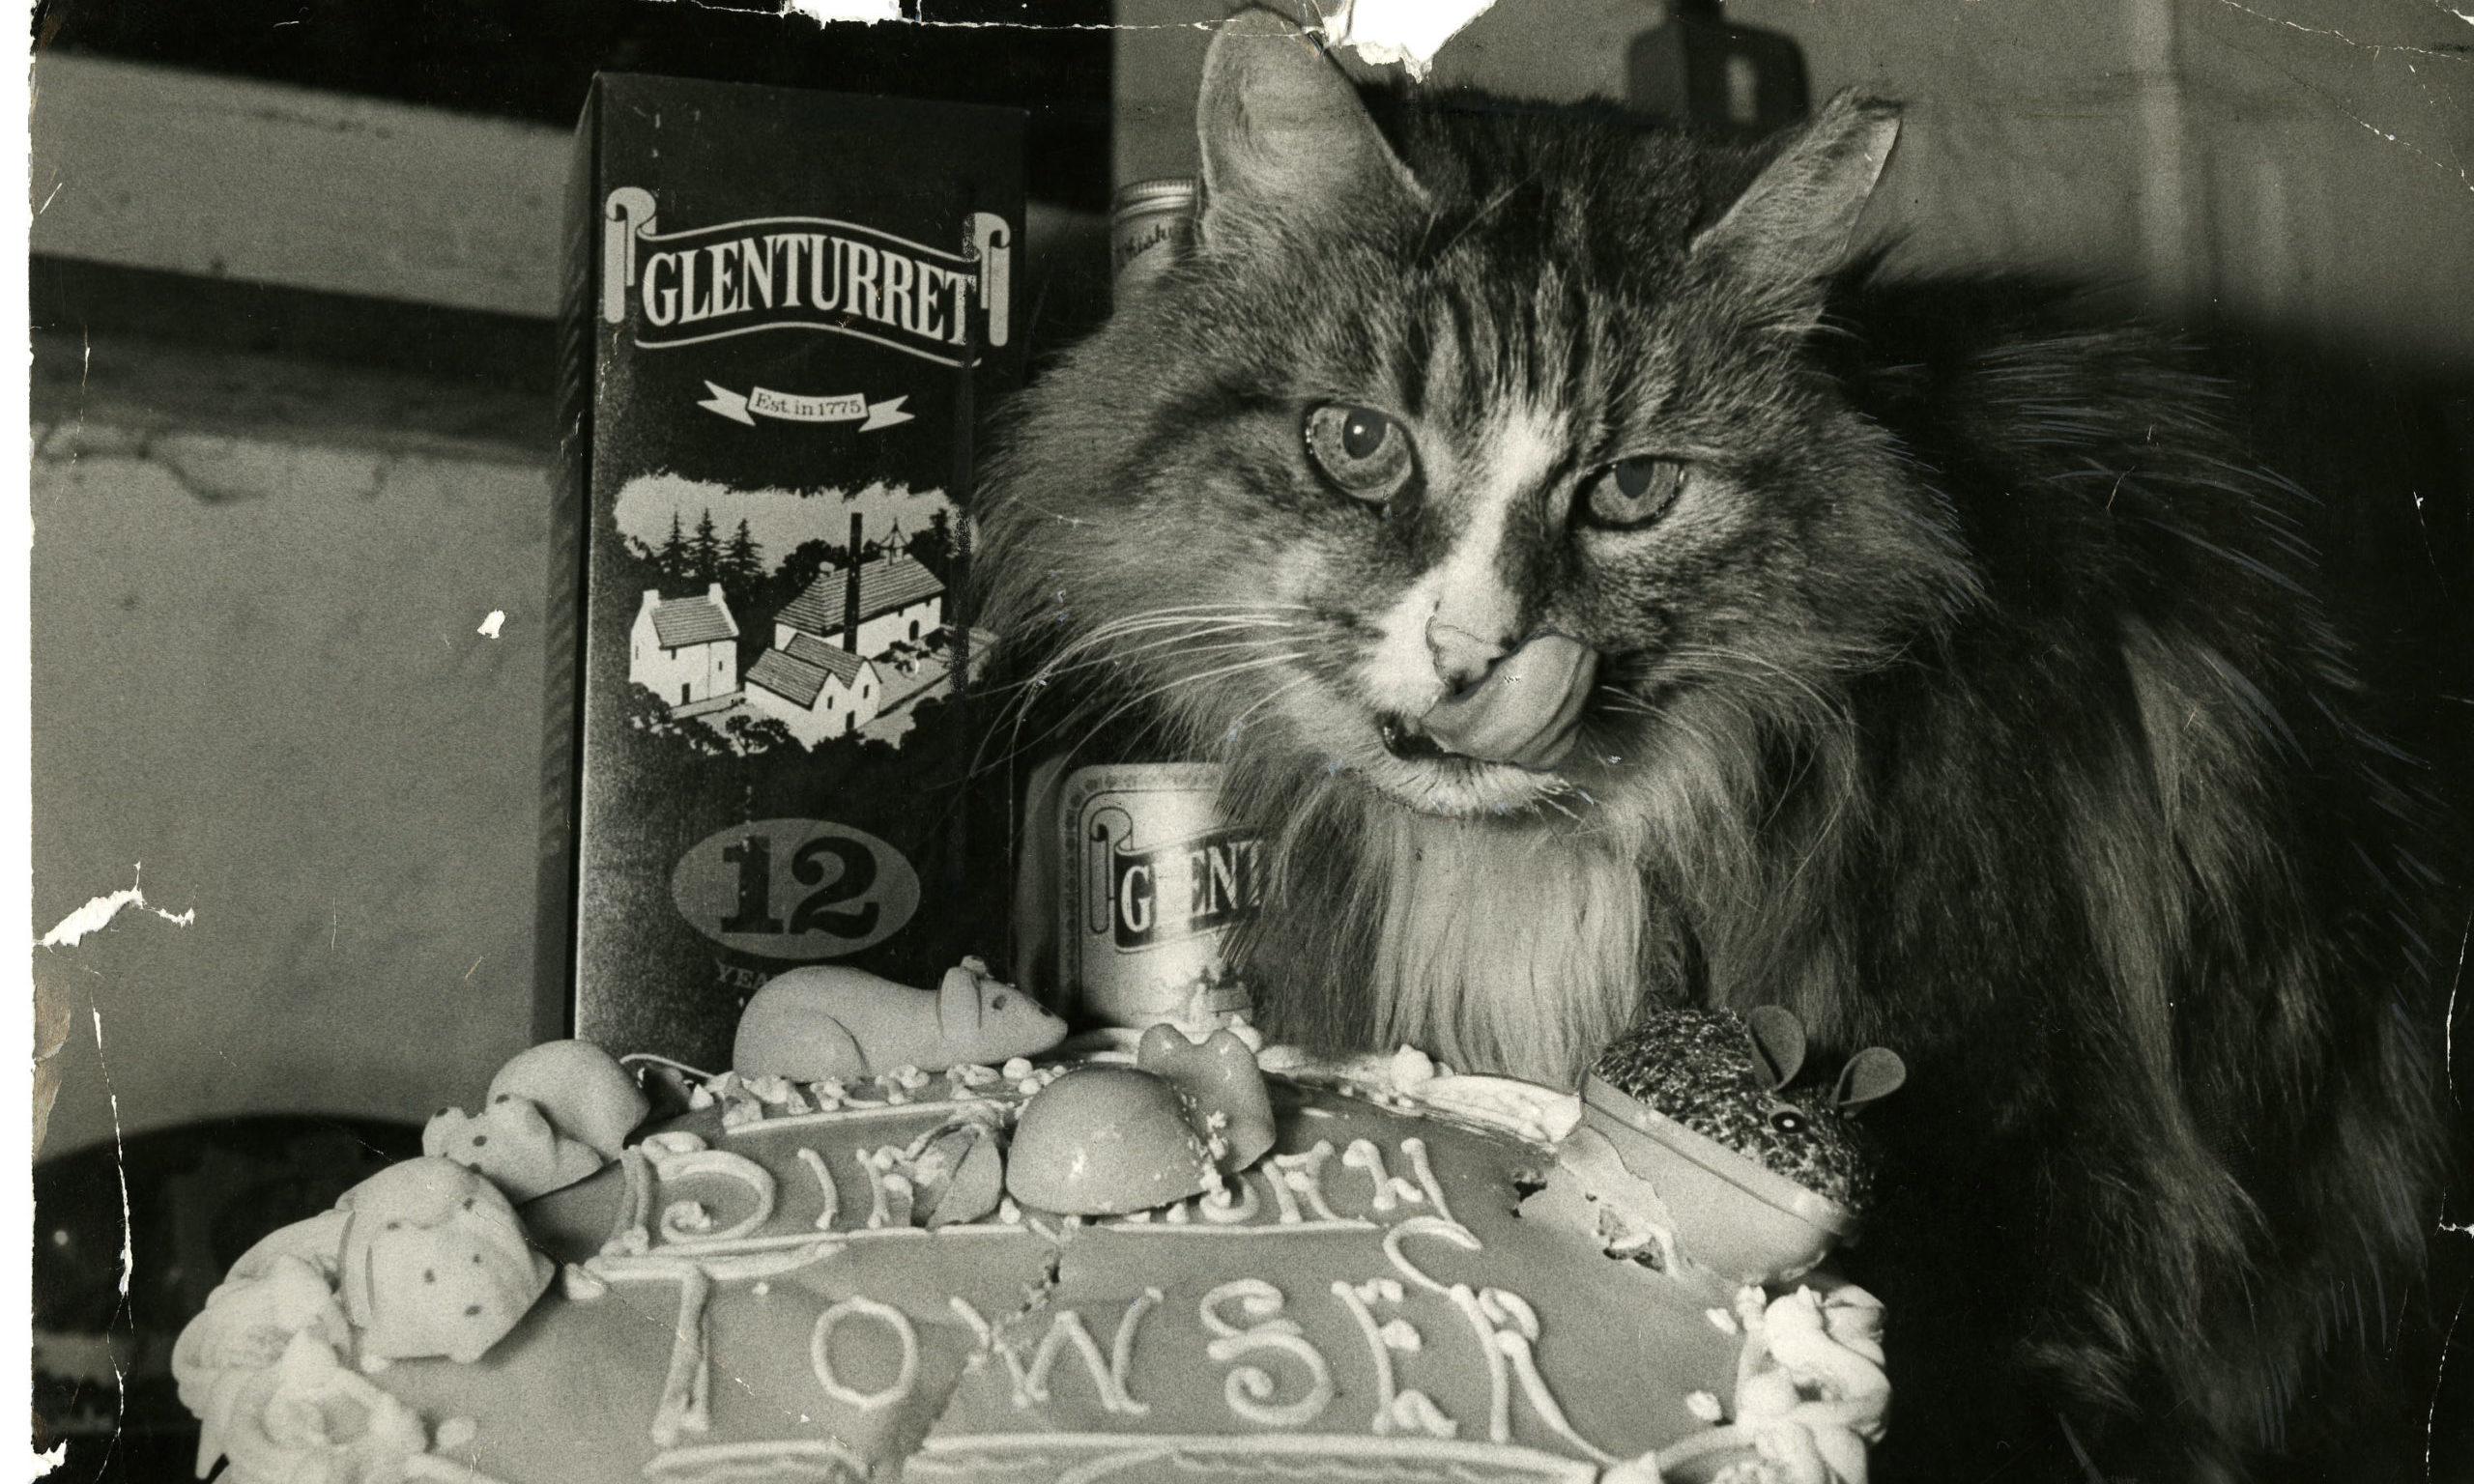 Towser - the iconic mouser-in-chief at Glenturret Distillery - celebrating her 18th birthday in 1981. She lived until the ripe old age of 24.